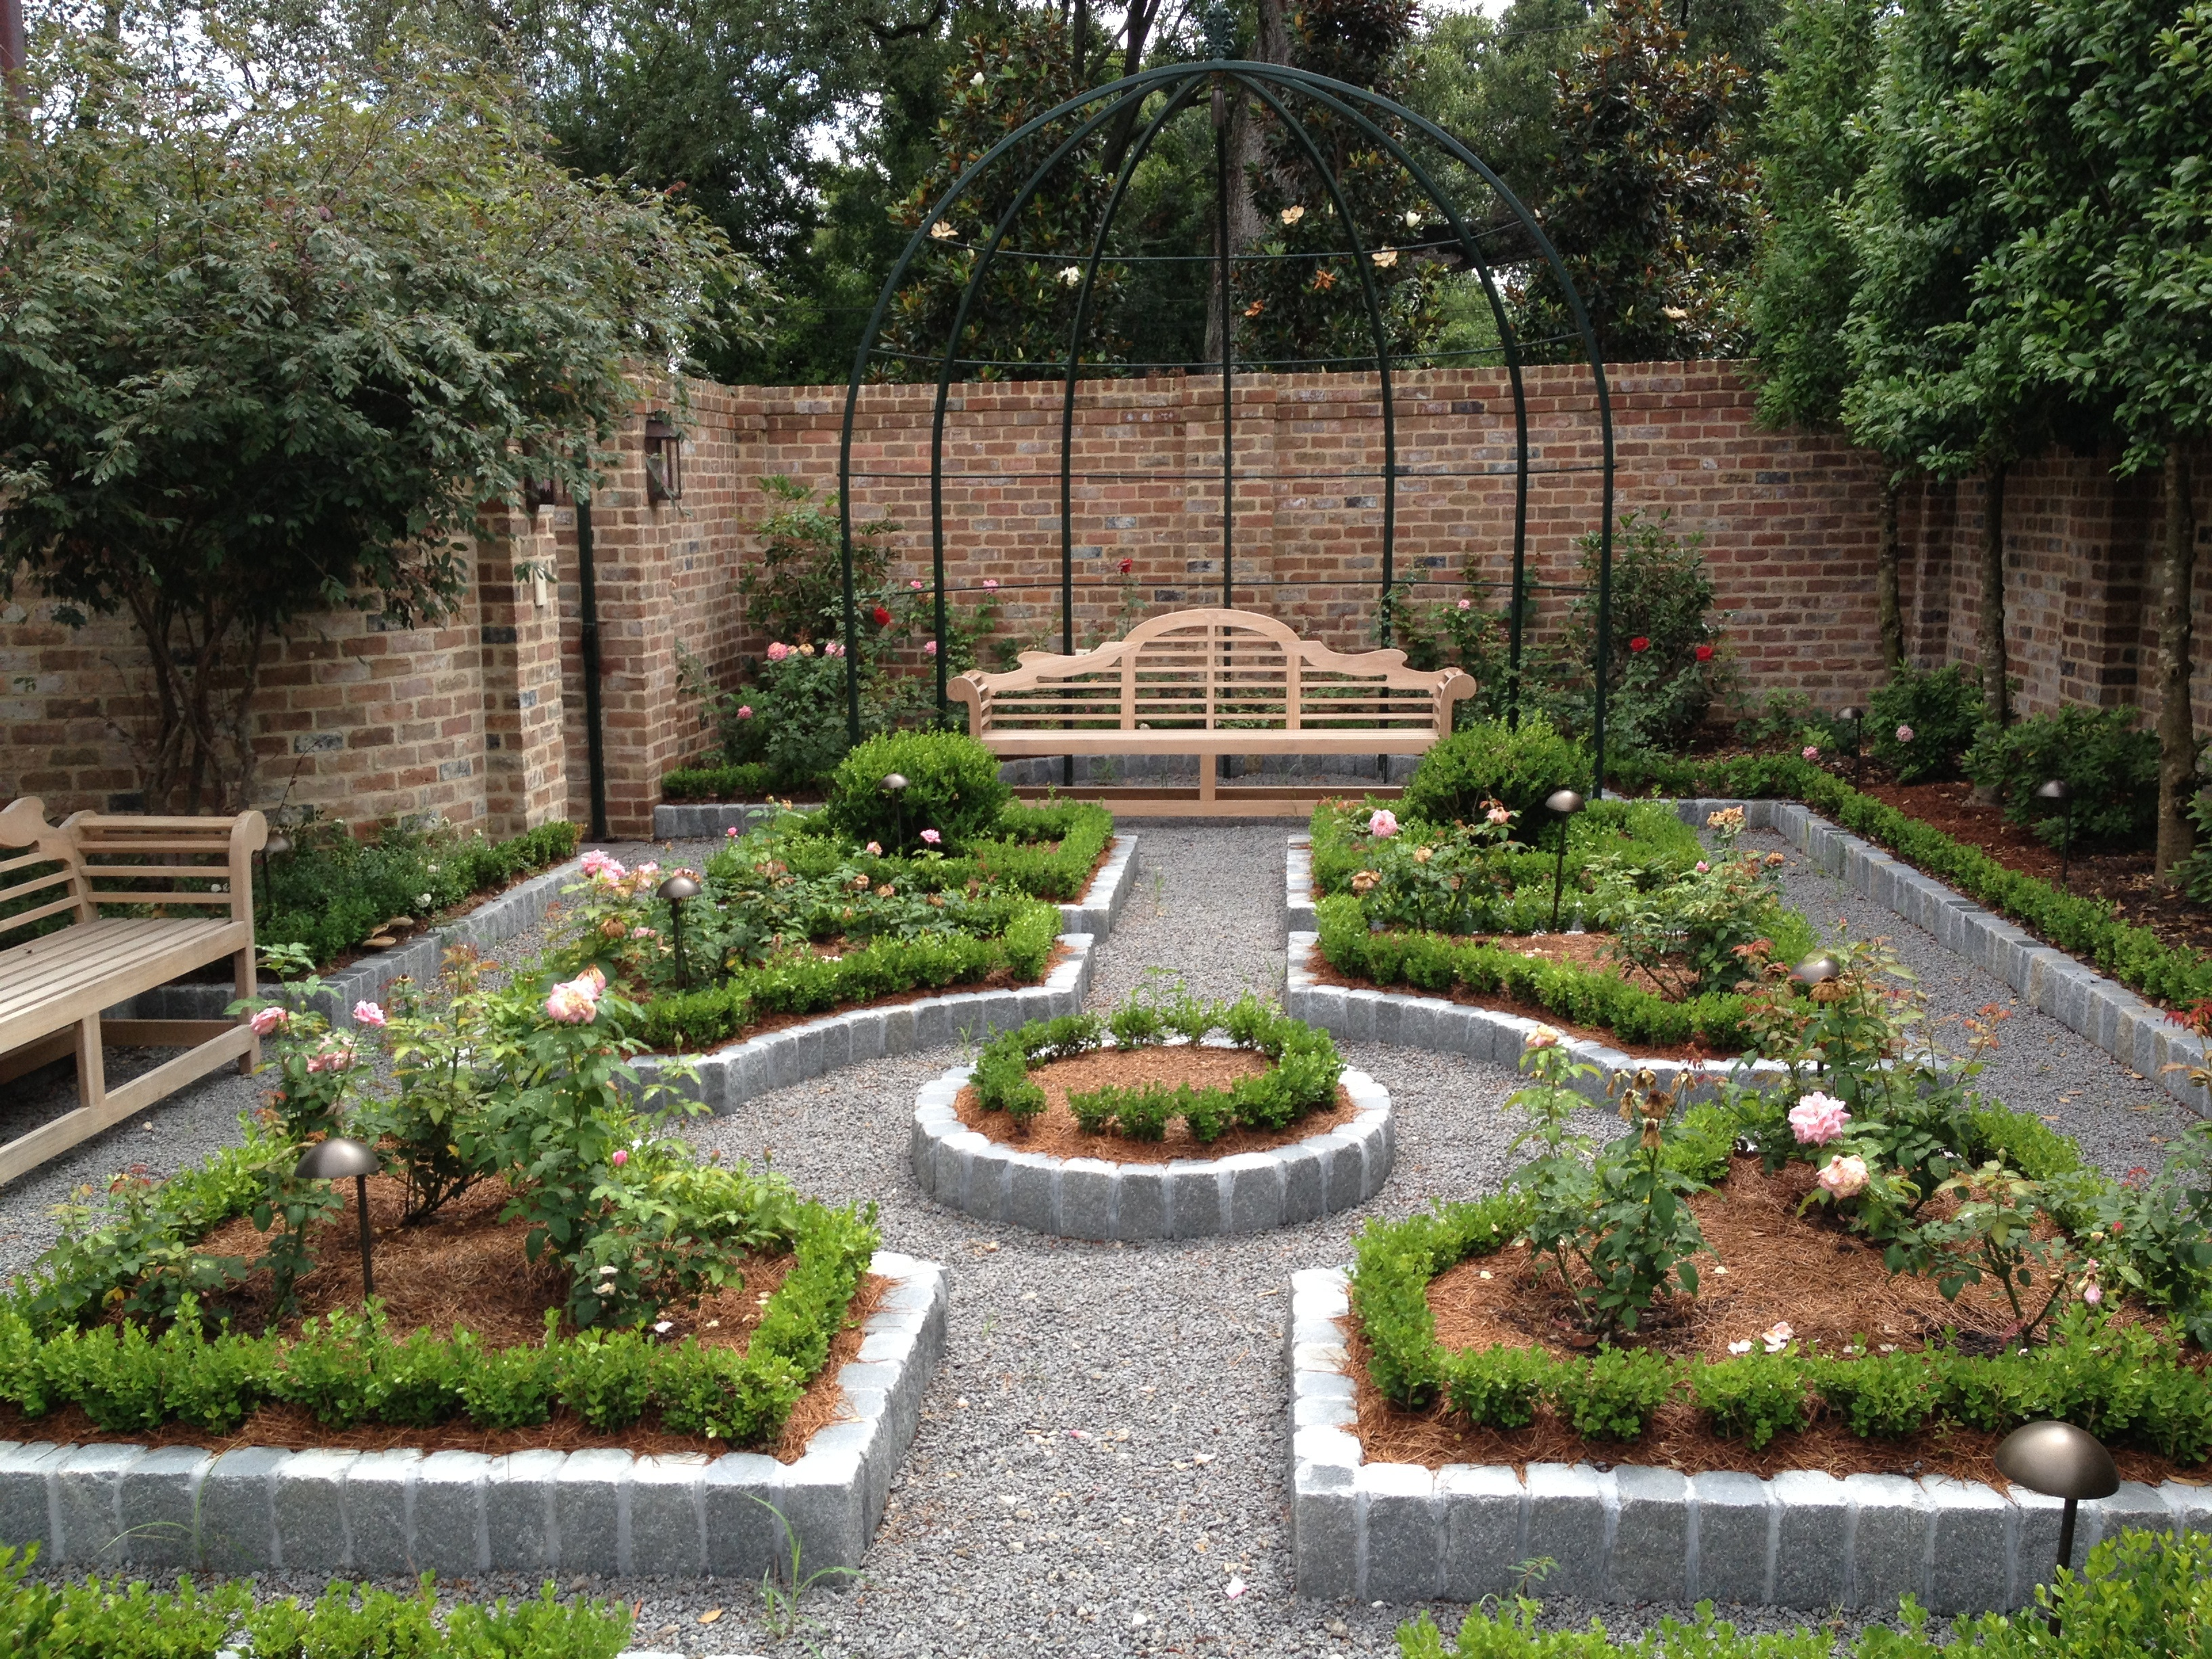 Outdoor Raised Vegetable Garden